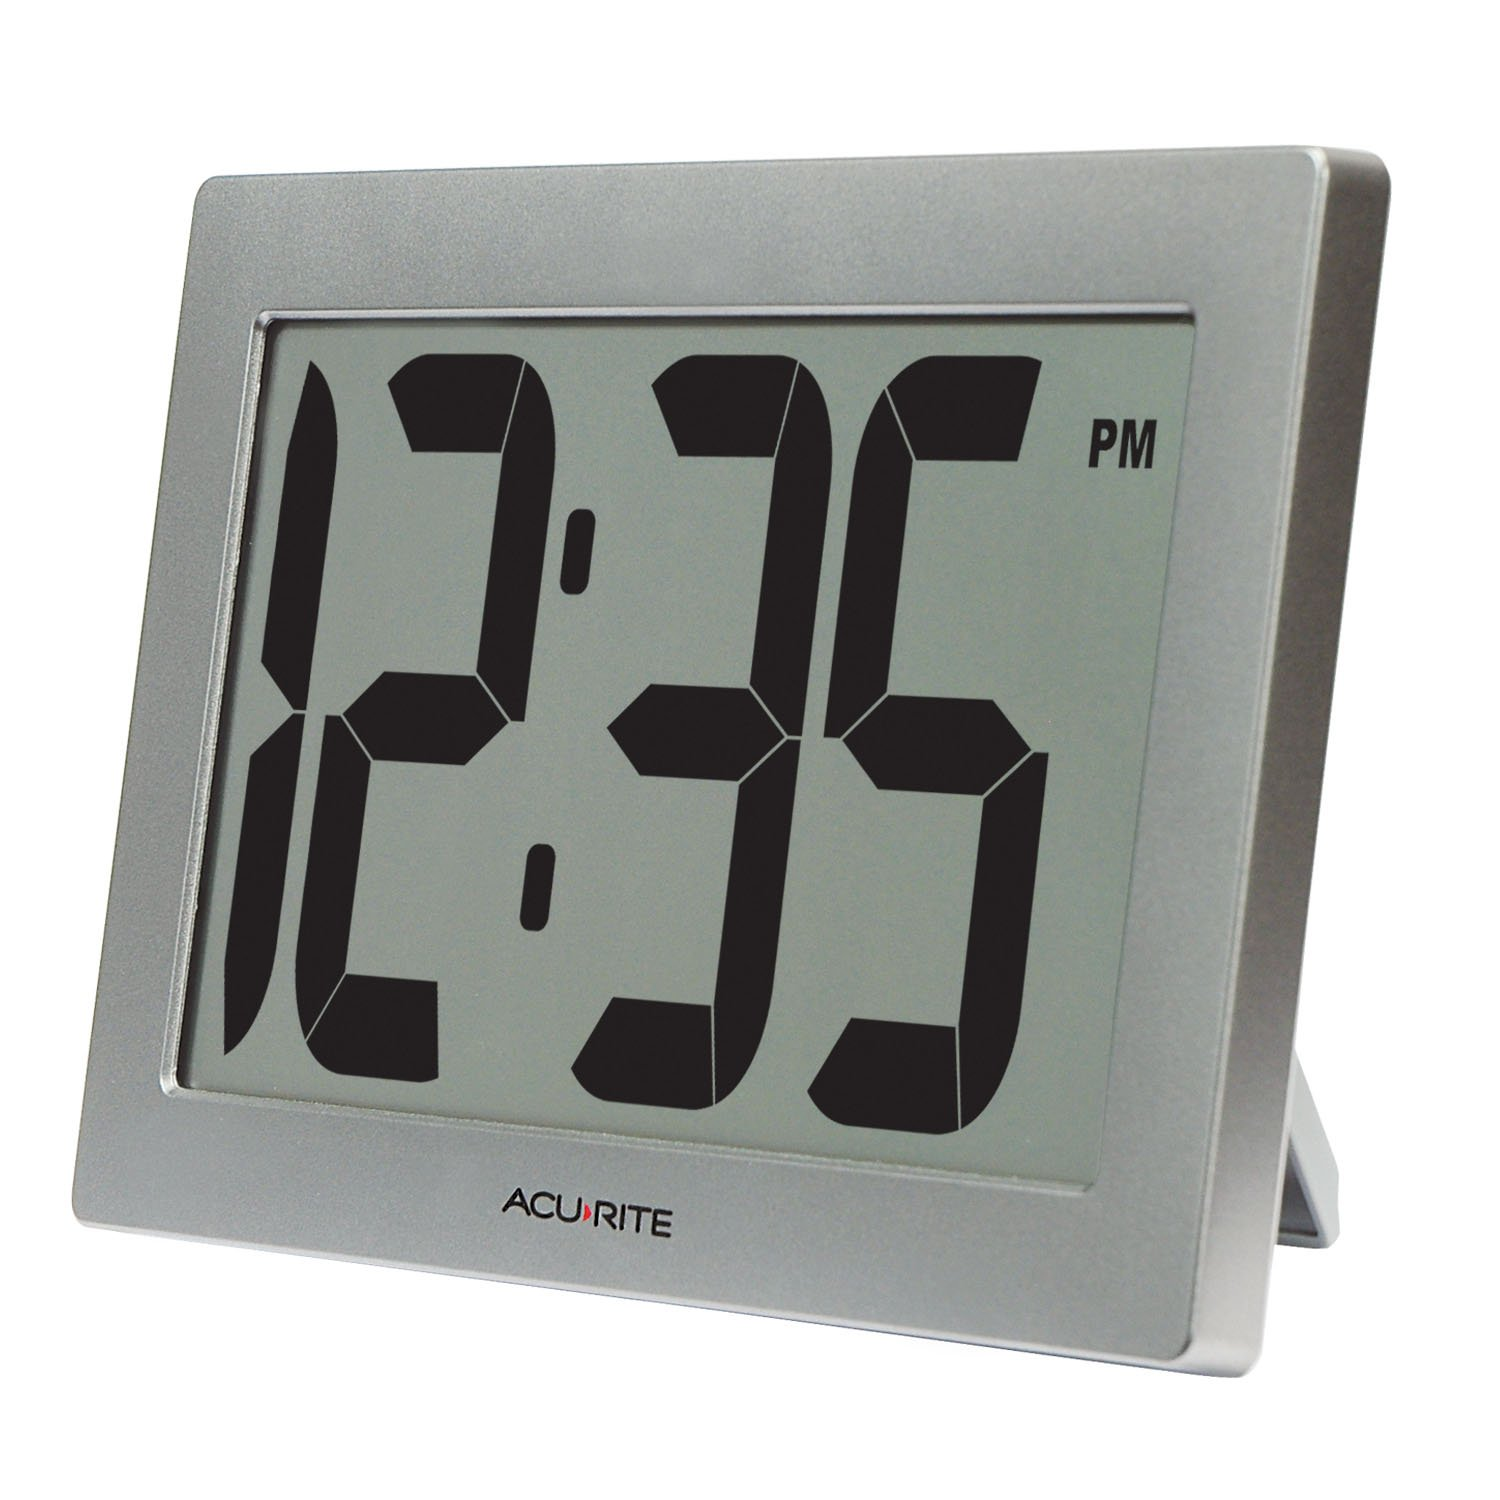 AcuRite 75102 9.5'' Large Digital Clock with 3.75'' Digits and Intelli-Time Technology